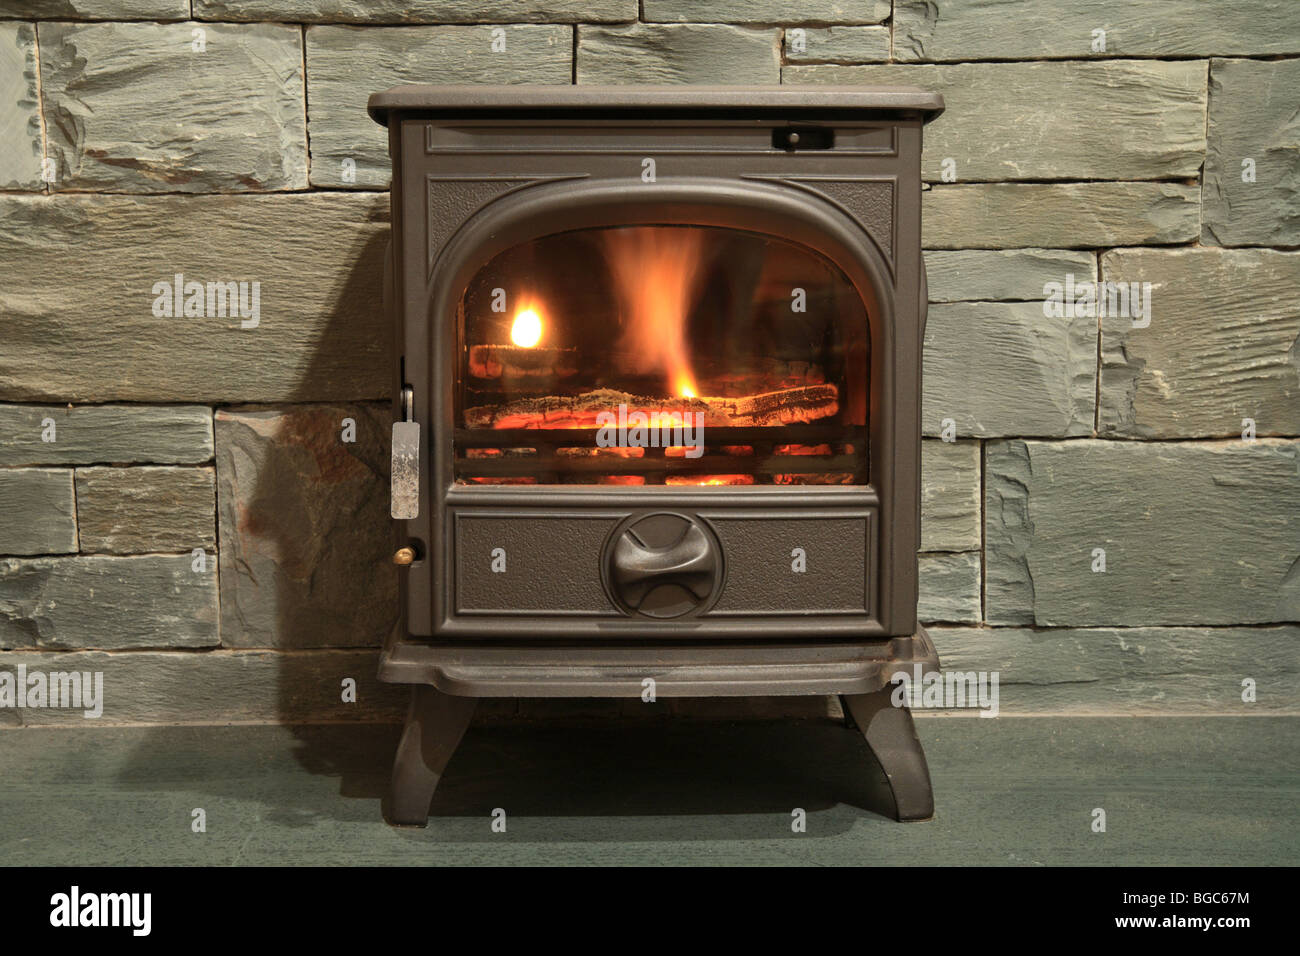 'Wood burning stove' standing on a Slate hearth with a slate surround, fireplace - Stock Image